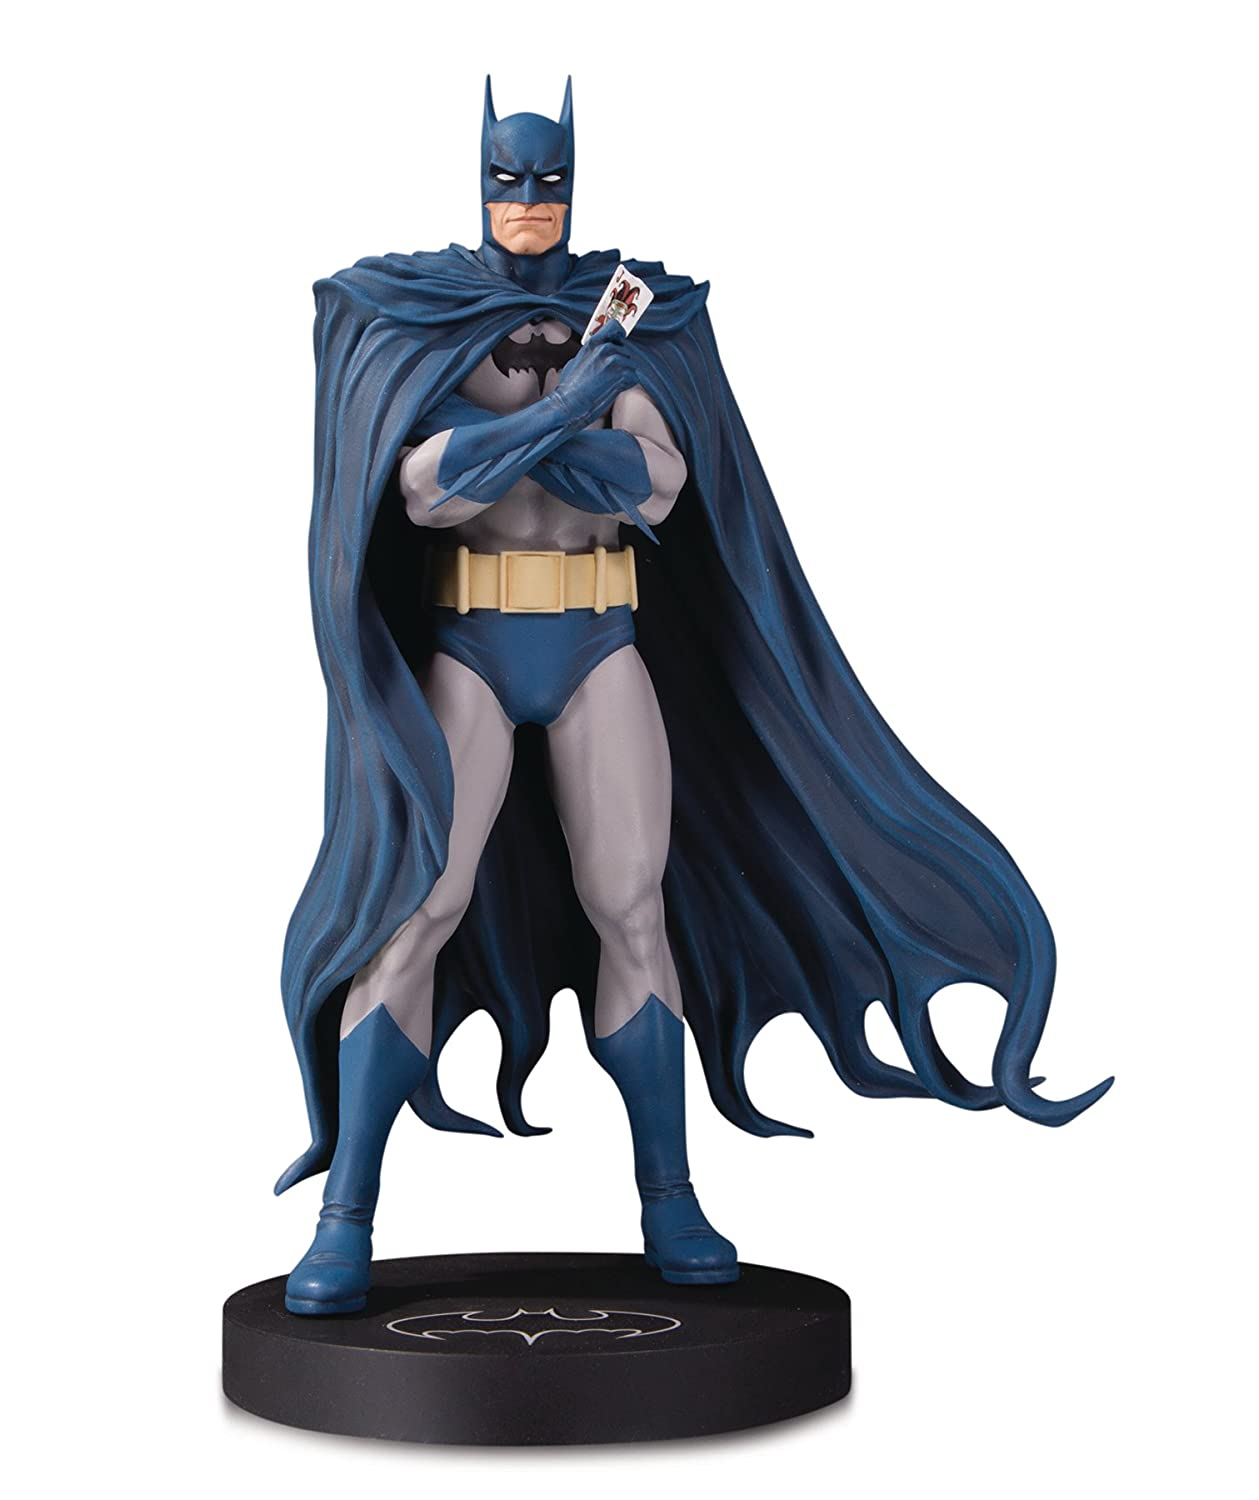 DC Comics Designer Series Batman Estatua by Brian Bolland